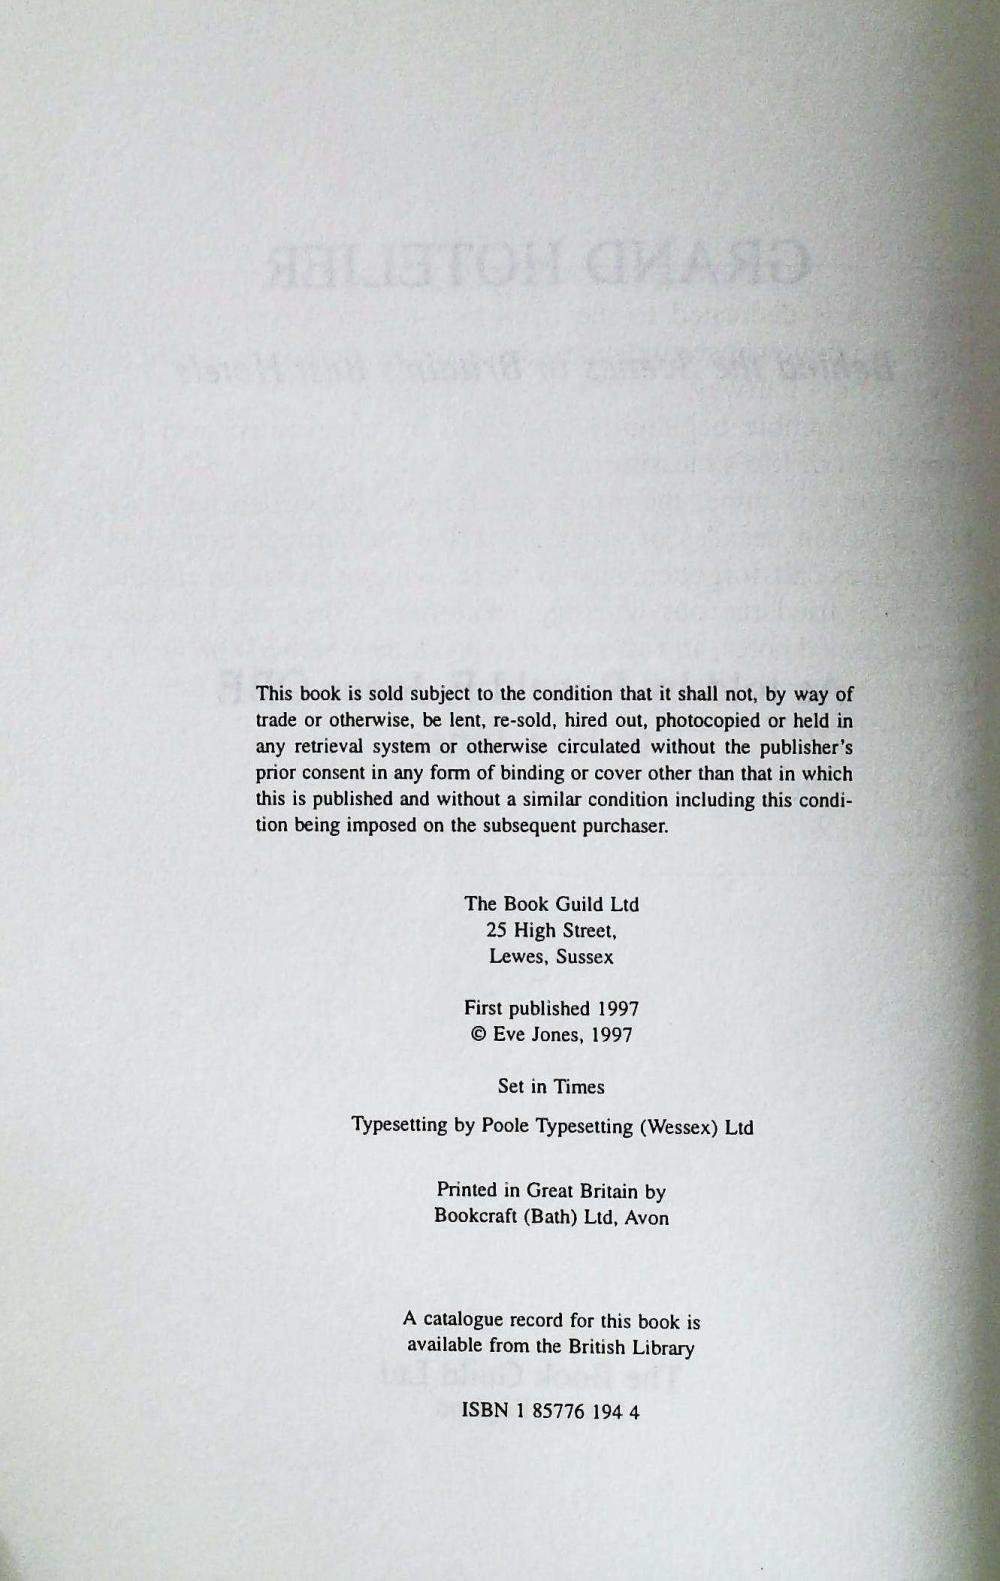 Grand Hotelier by Ronald F. Jones OBE signed hardback book 213 pages Published 1997 The Book Guild